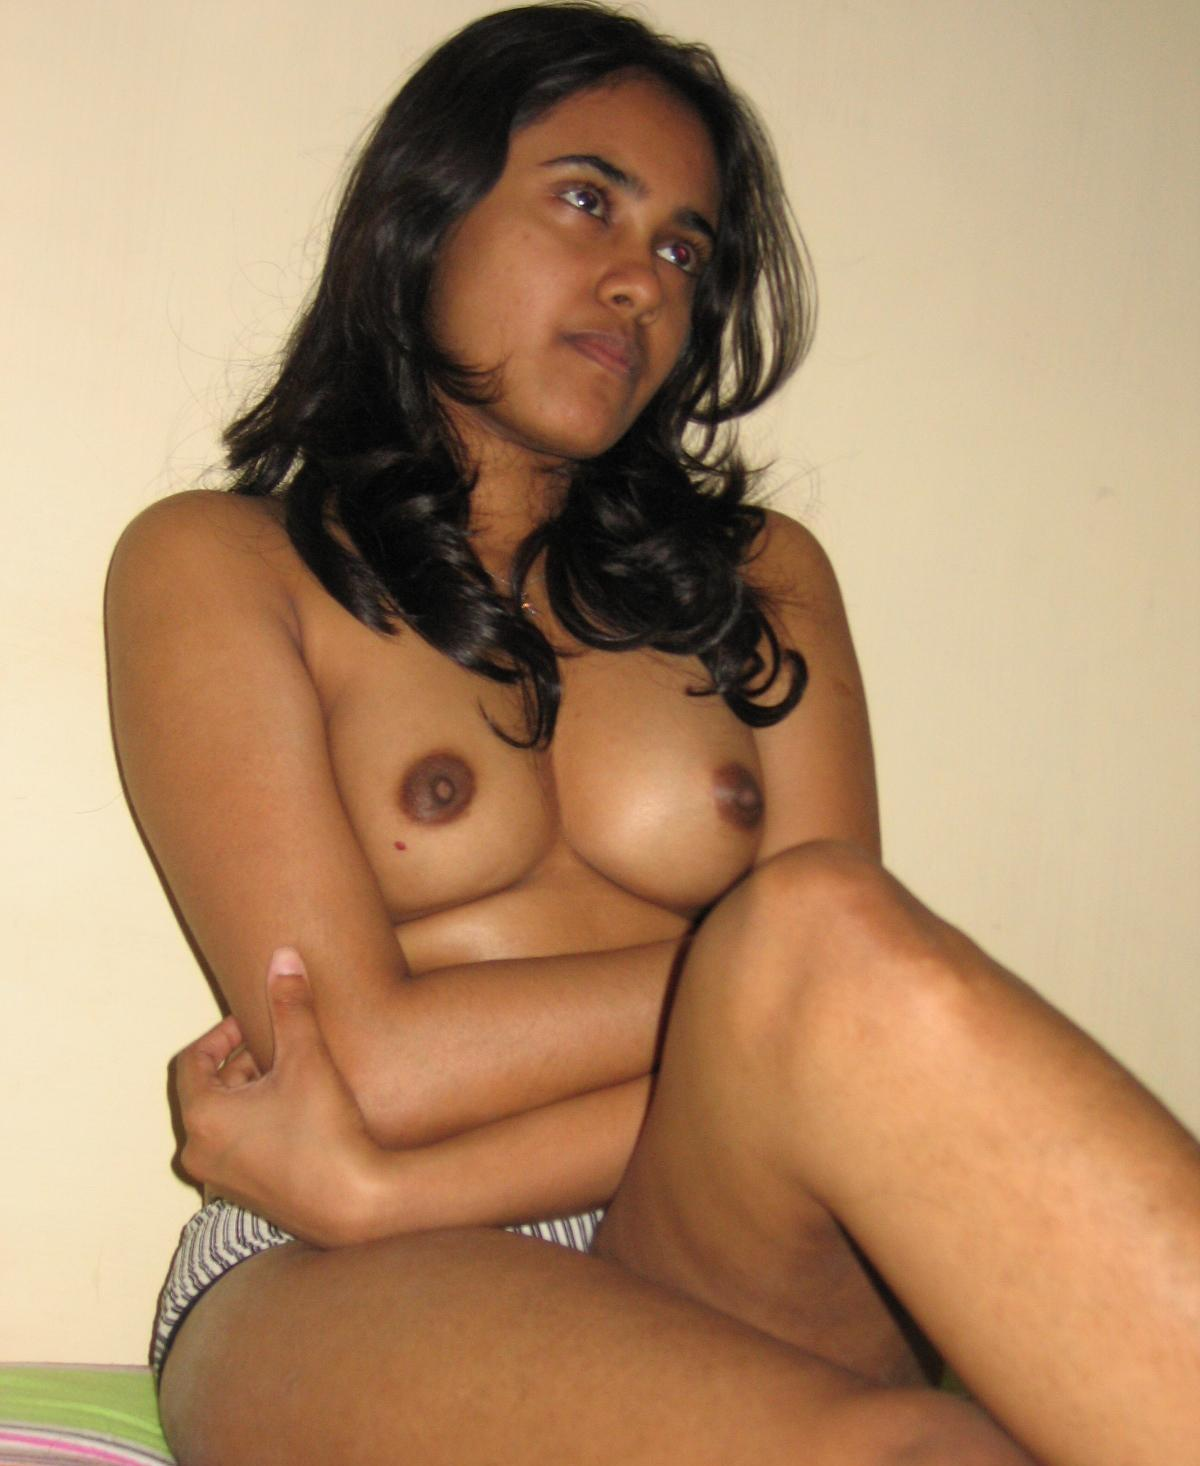 Sri lankan hot girl fuck, swedish women boobs